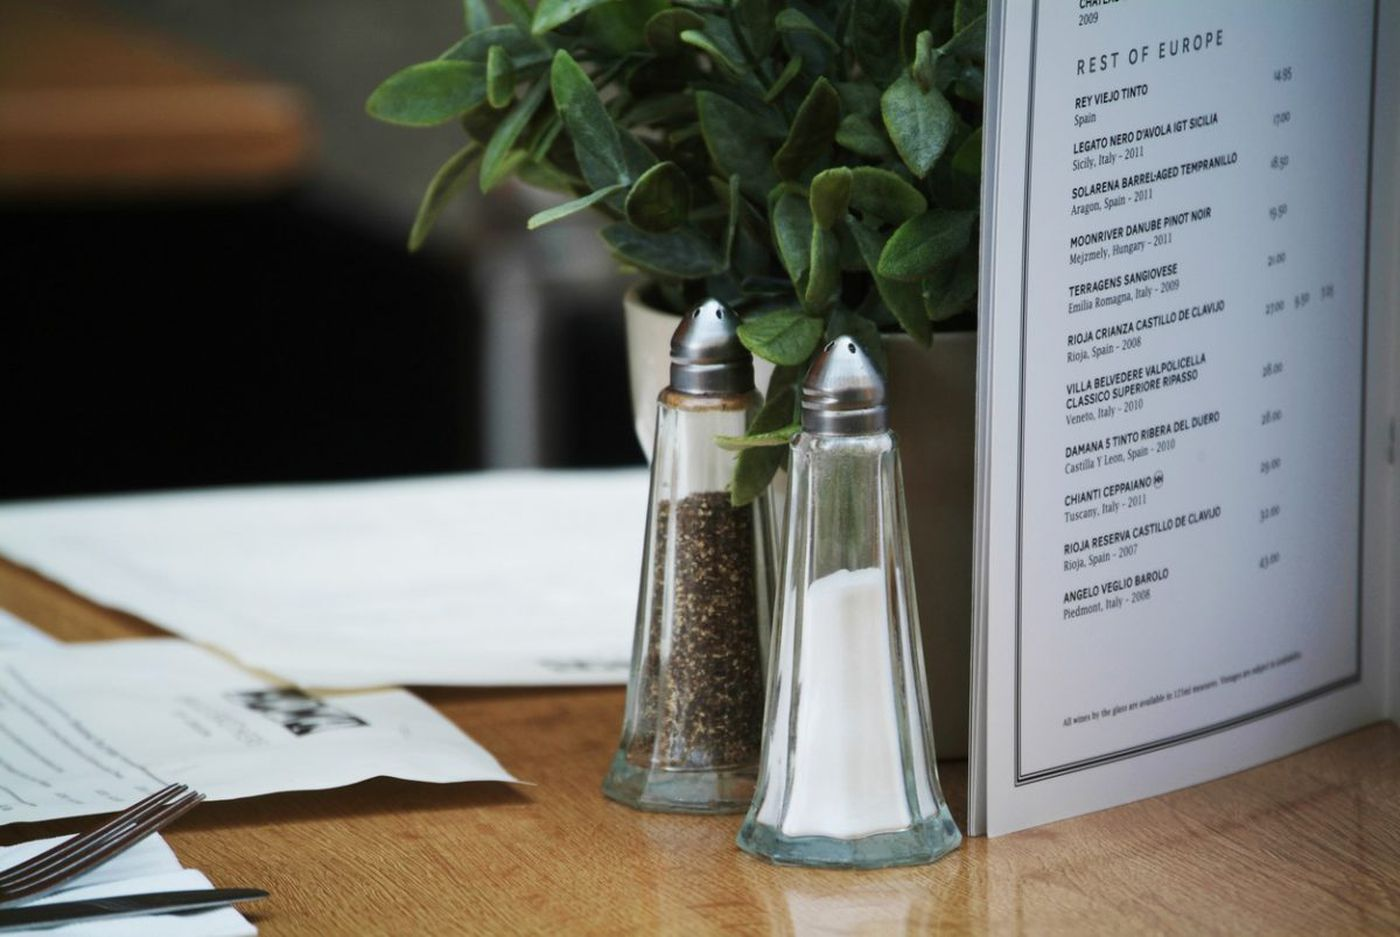 Sodium content needs to be on the menu at Philly restaurants. Here's why